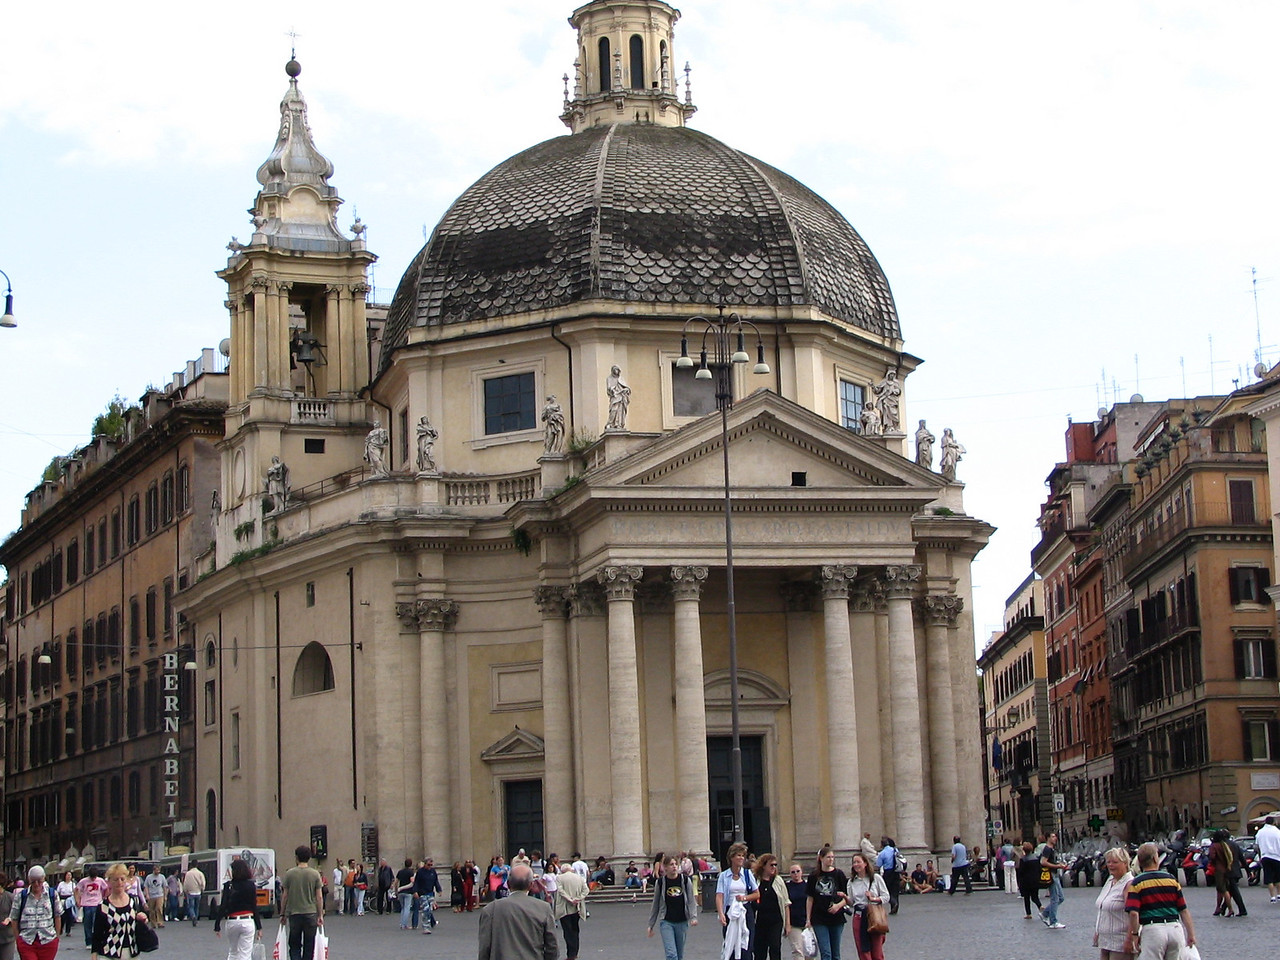 Piazza del Portolo. This is the Santa Maria dei Miracoli church. It was built in 1658 by Carlo Rainaldi.